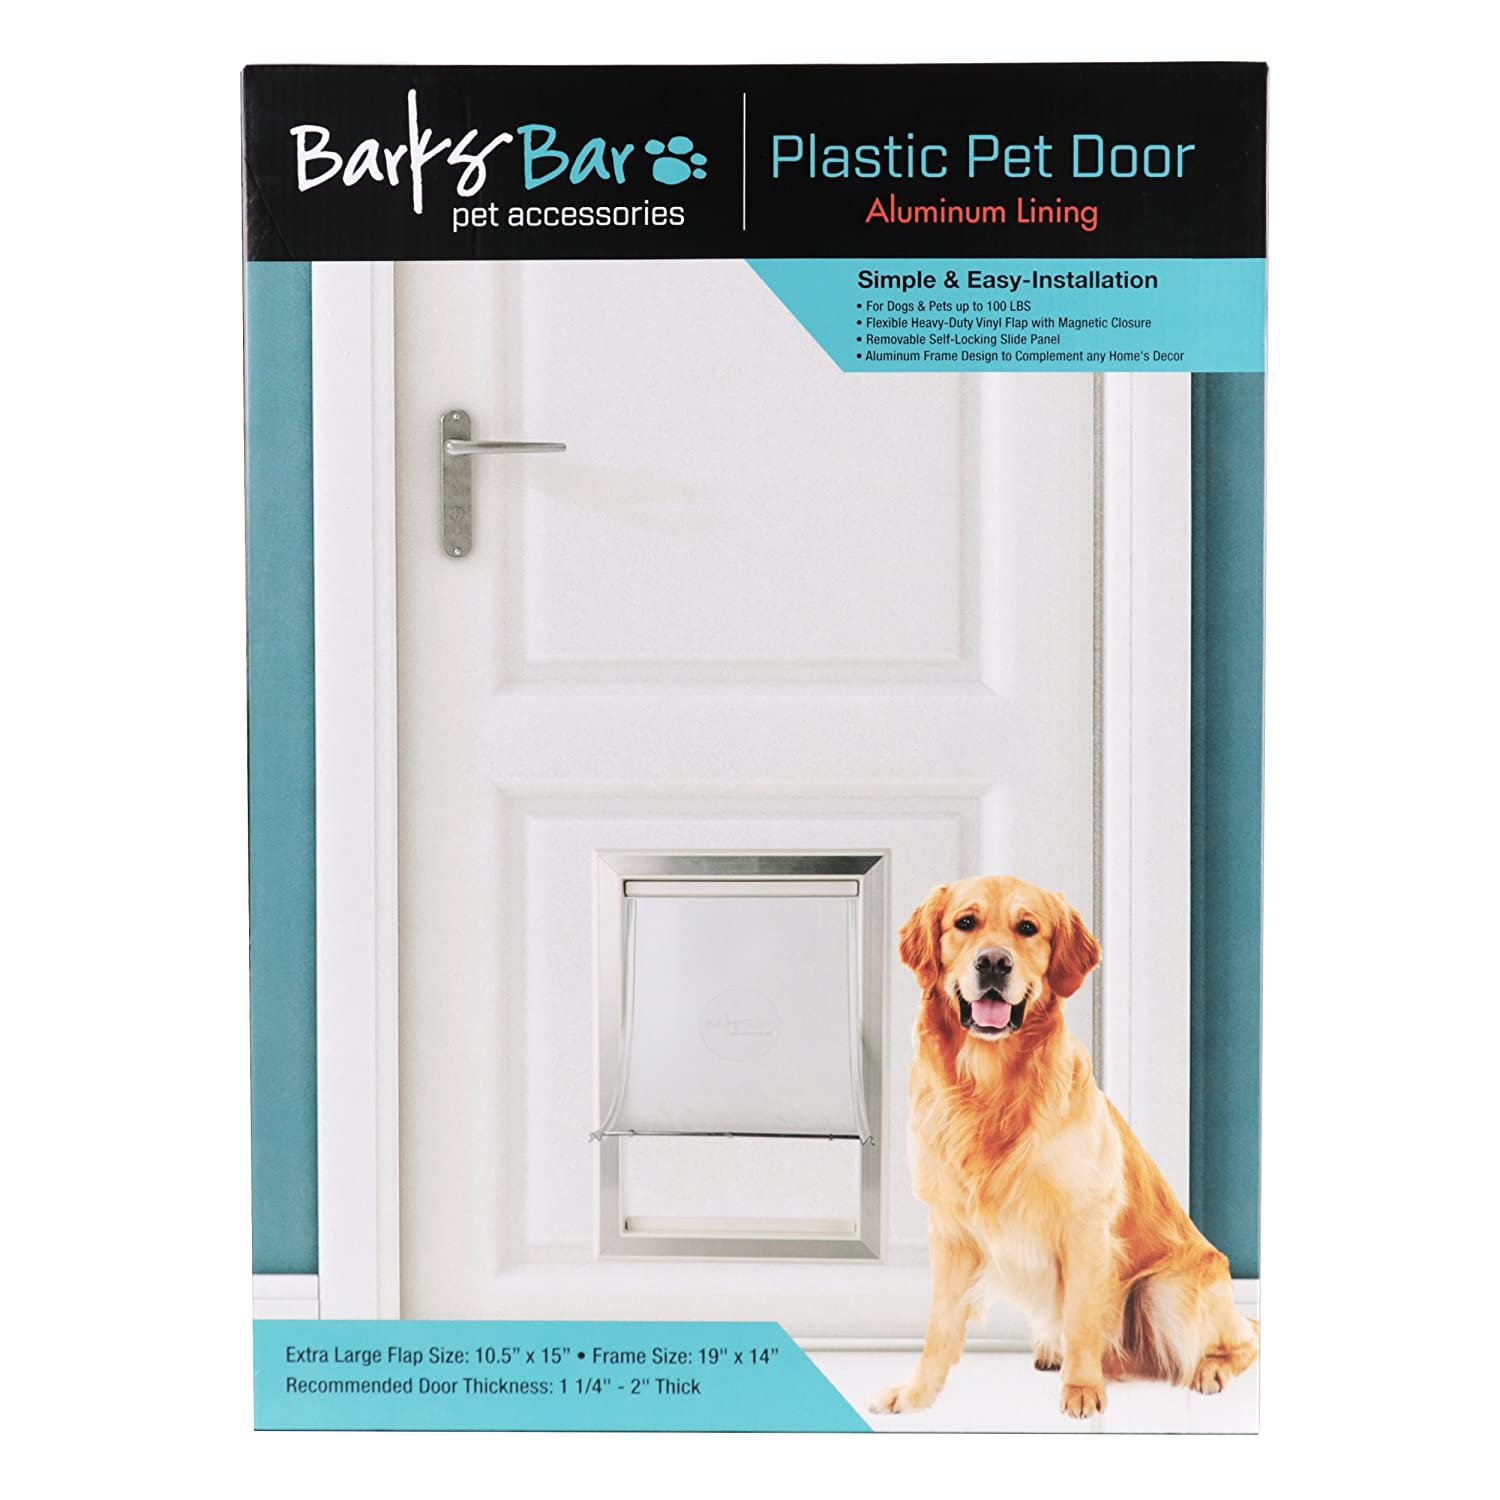 Amazon Barksbar Large Plastic Dog Door With Aluminum Lining